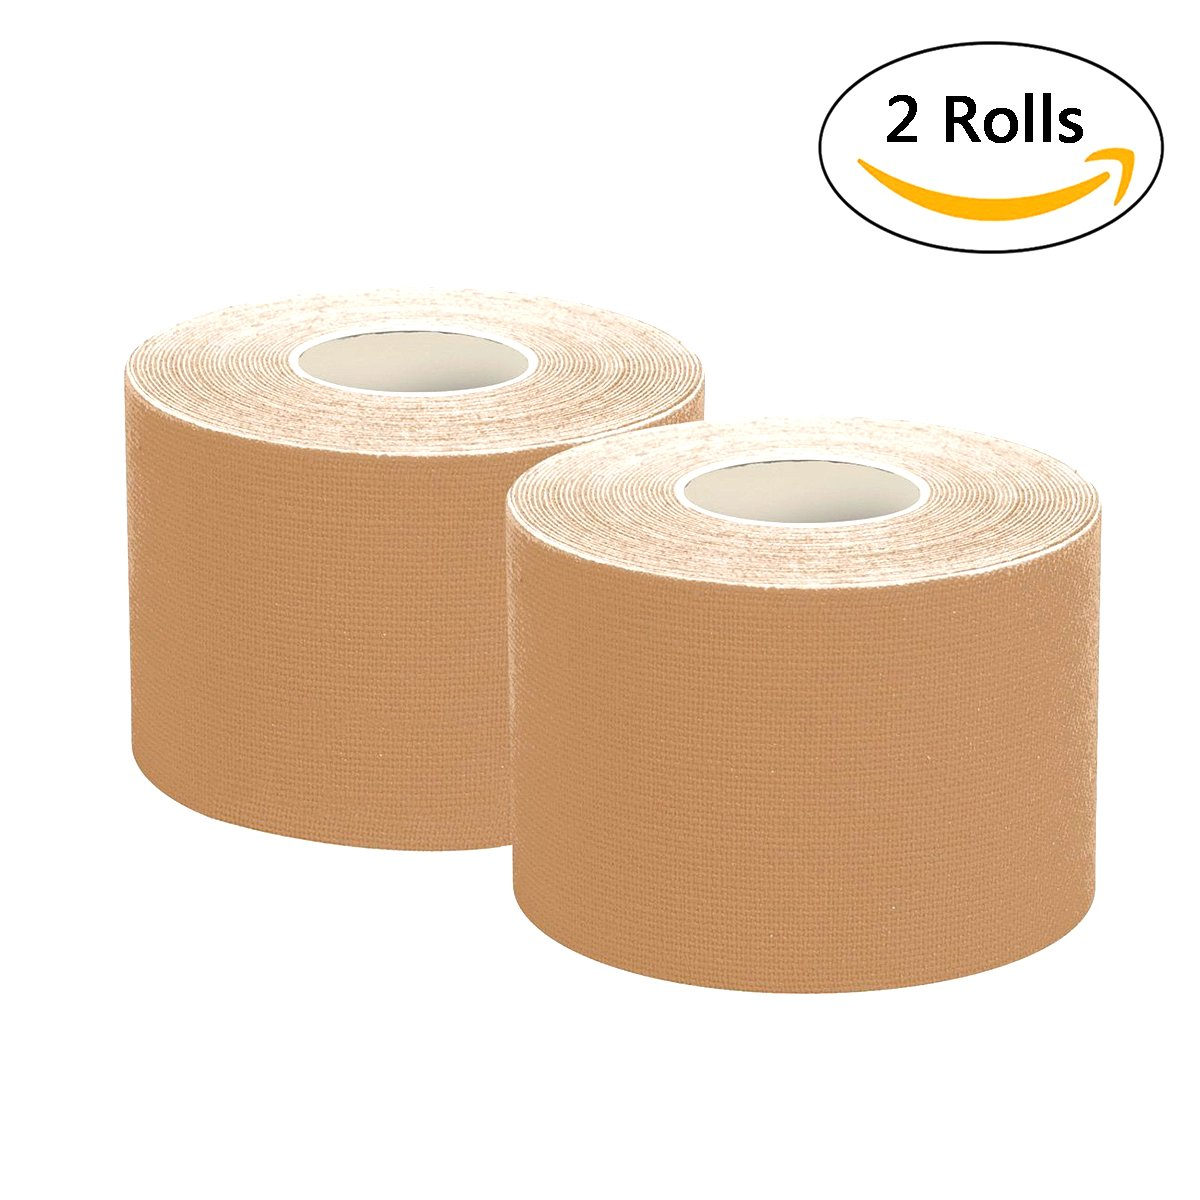 Kinesiology Tape Muscle Support Adhesive Tape 2 Rolls Pack Elastic Therapeutic Sports Tape for Knee Wrist Shoulder Elbow,Waterproof,Breathable,2''*2'' per Poll (Skin)